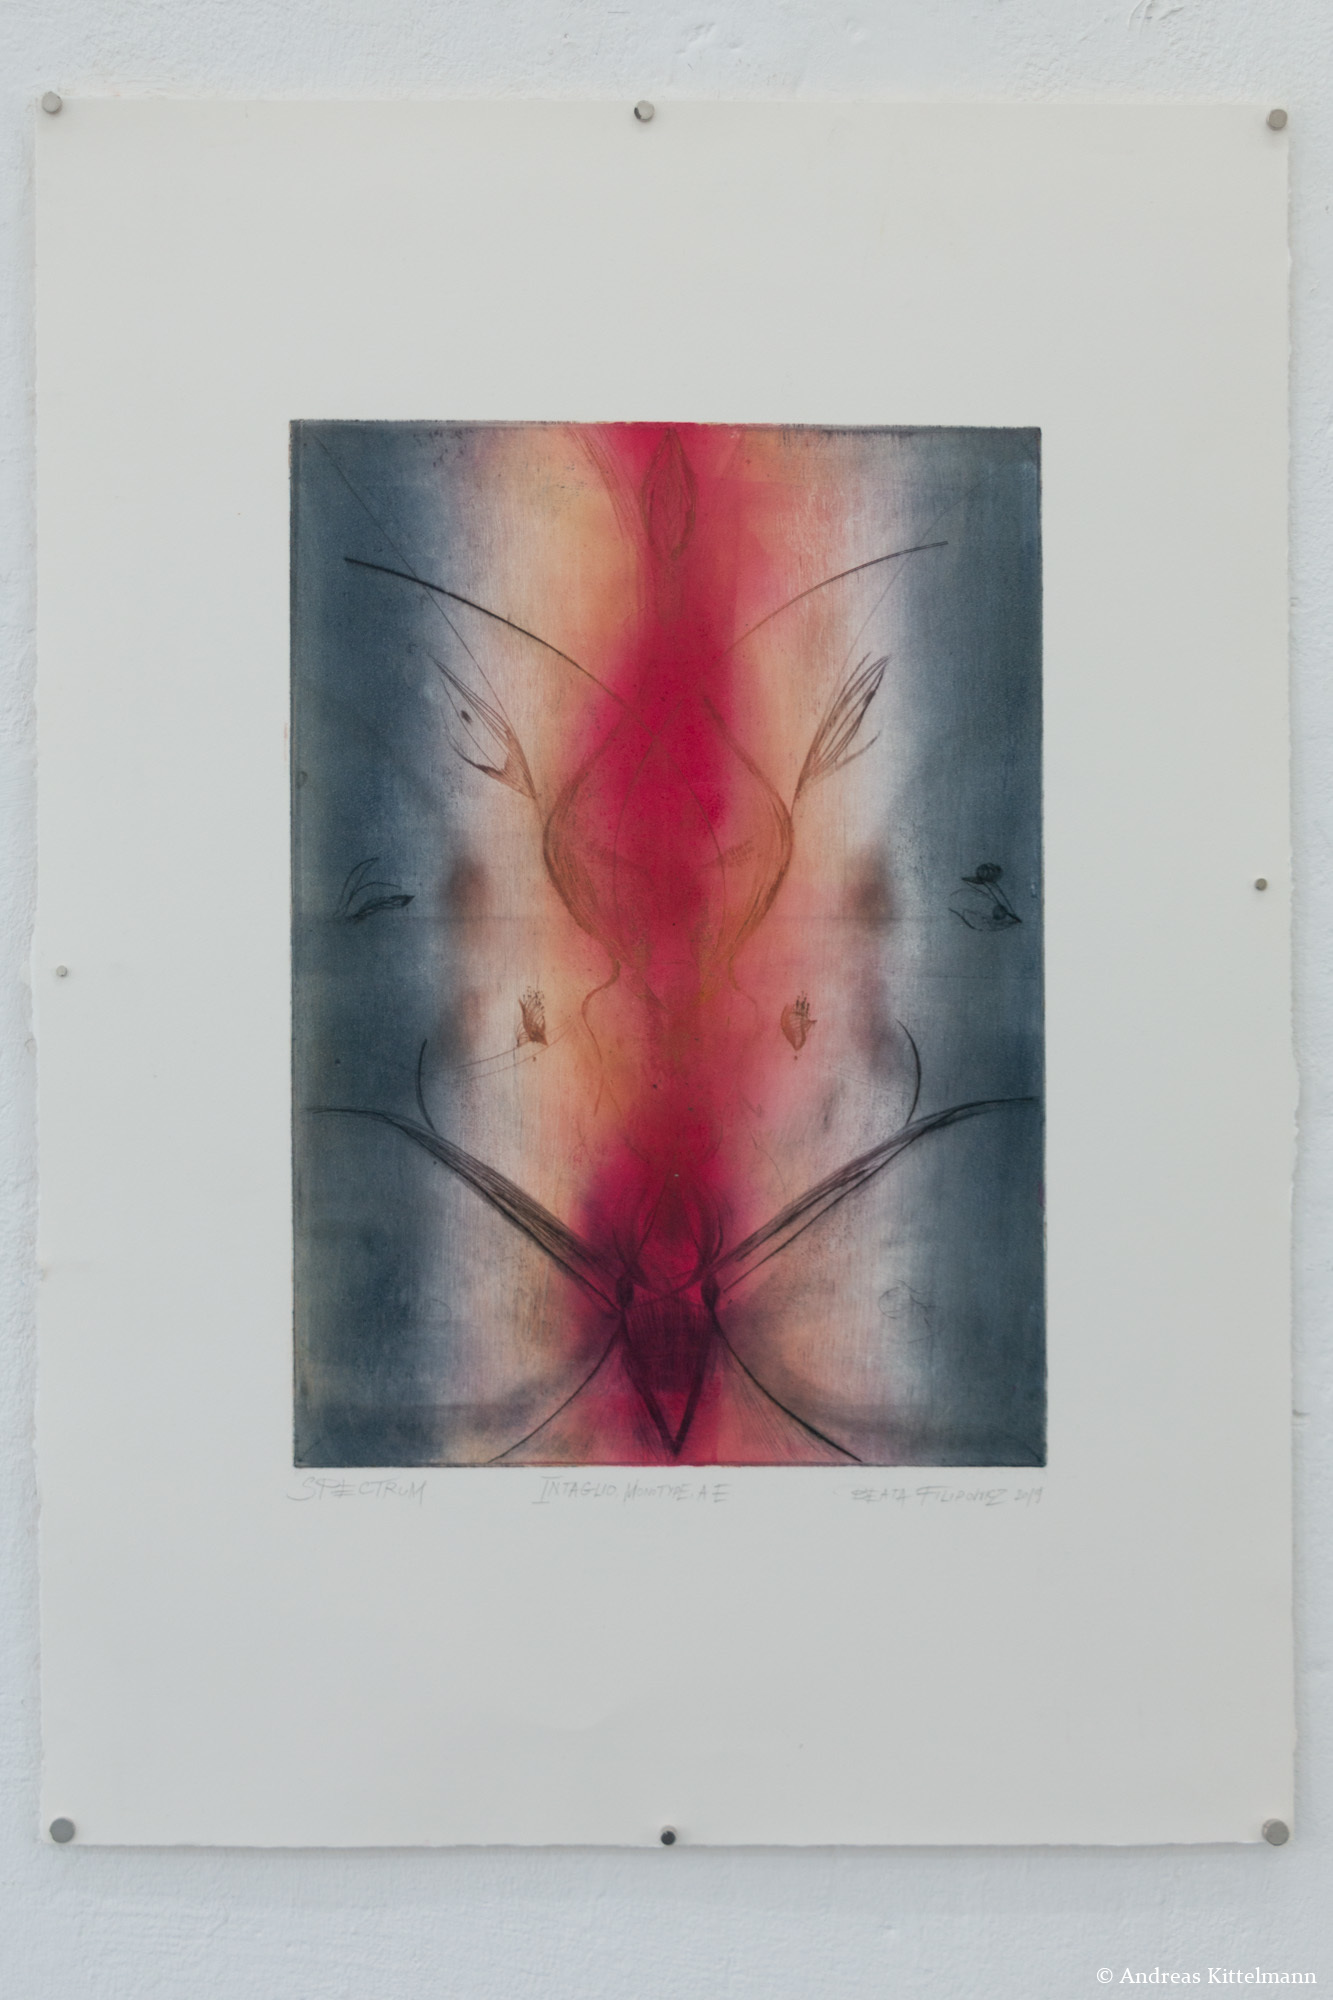 Beata Filipowicz, Body Spectrum, 2019, Intaglio: monotype, Author's Edition, 69 x 50 cm, aus der Serie BODY MATRICES